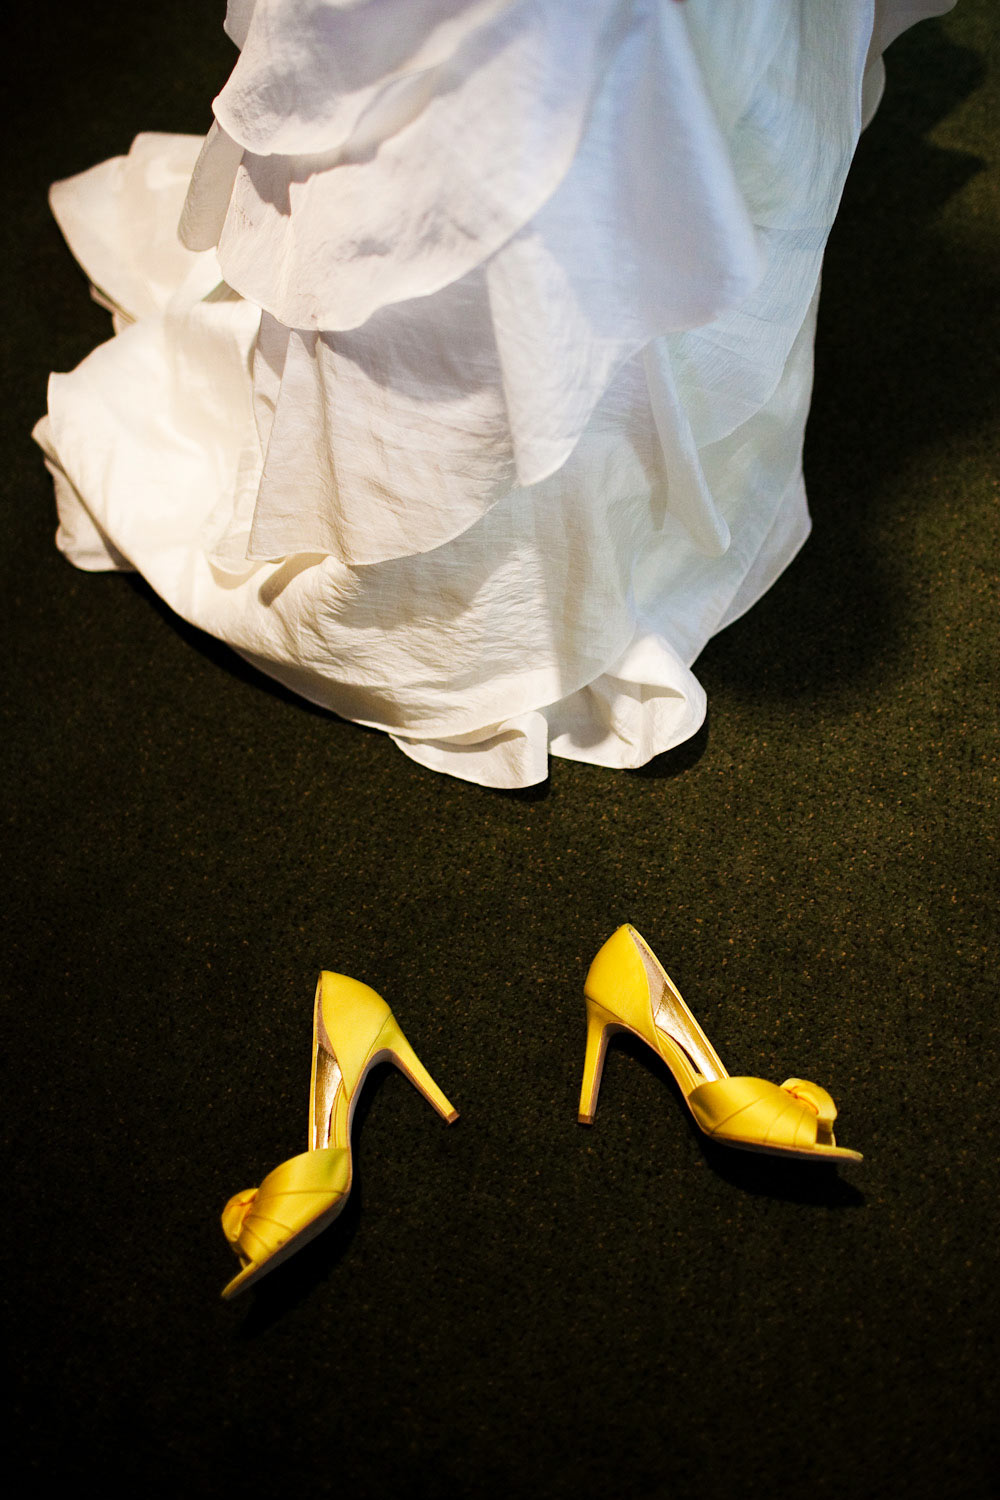 A detail photograph of a Bride's wedding shoes.